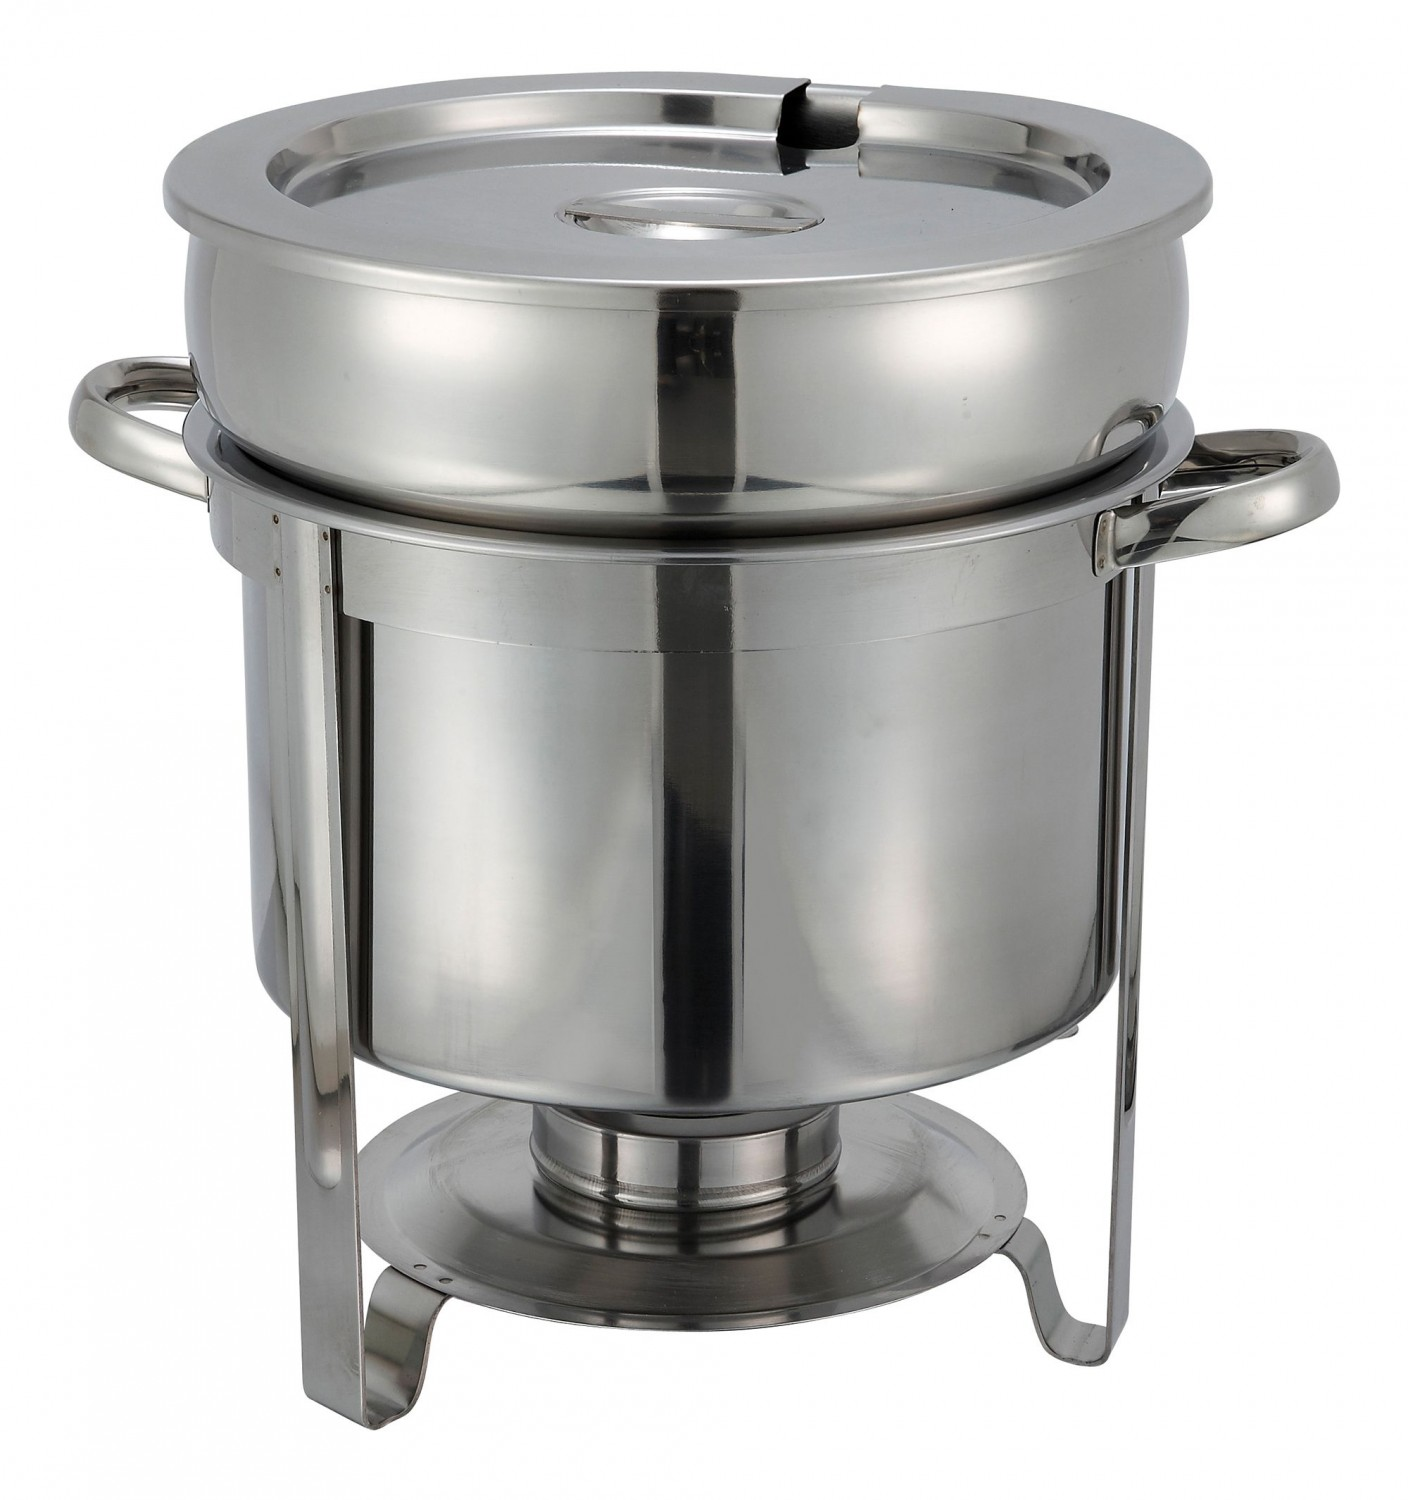 Winco 211 Stainless 11 Quart Soup Warmer